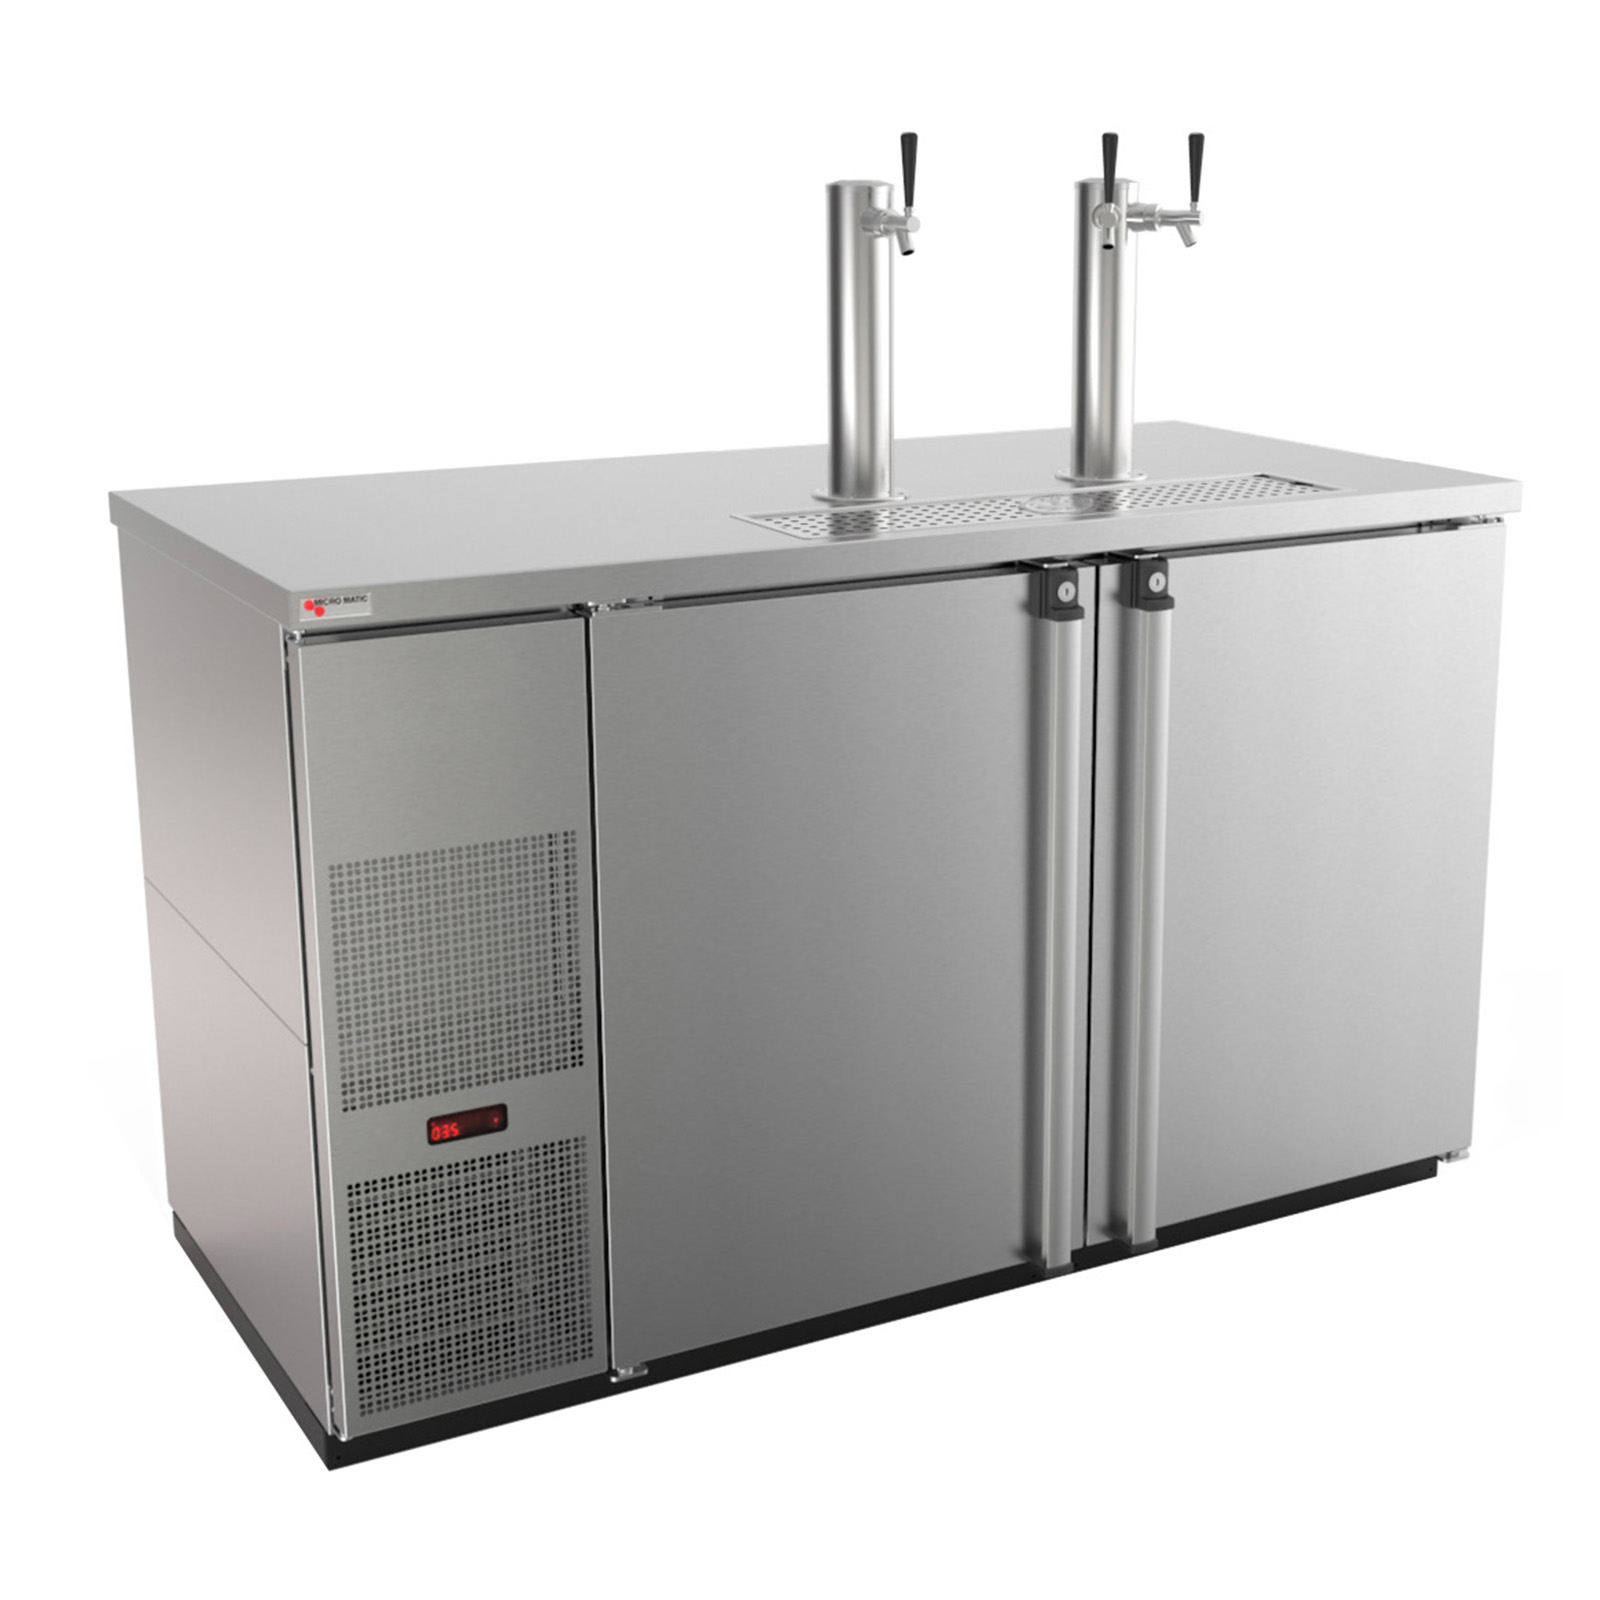 Micro Matic USA MDD58S-E draft beer cooler